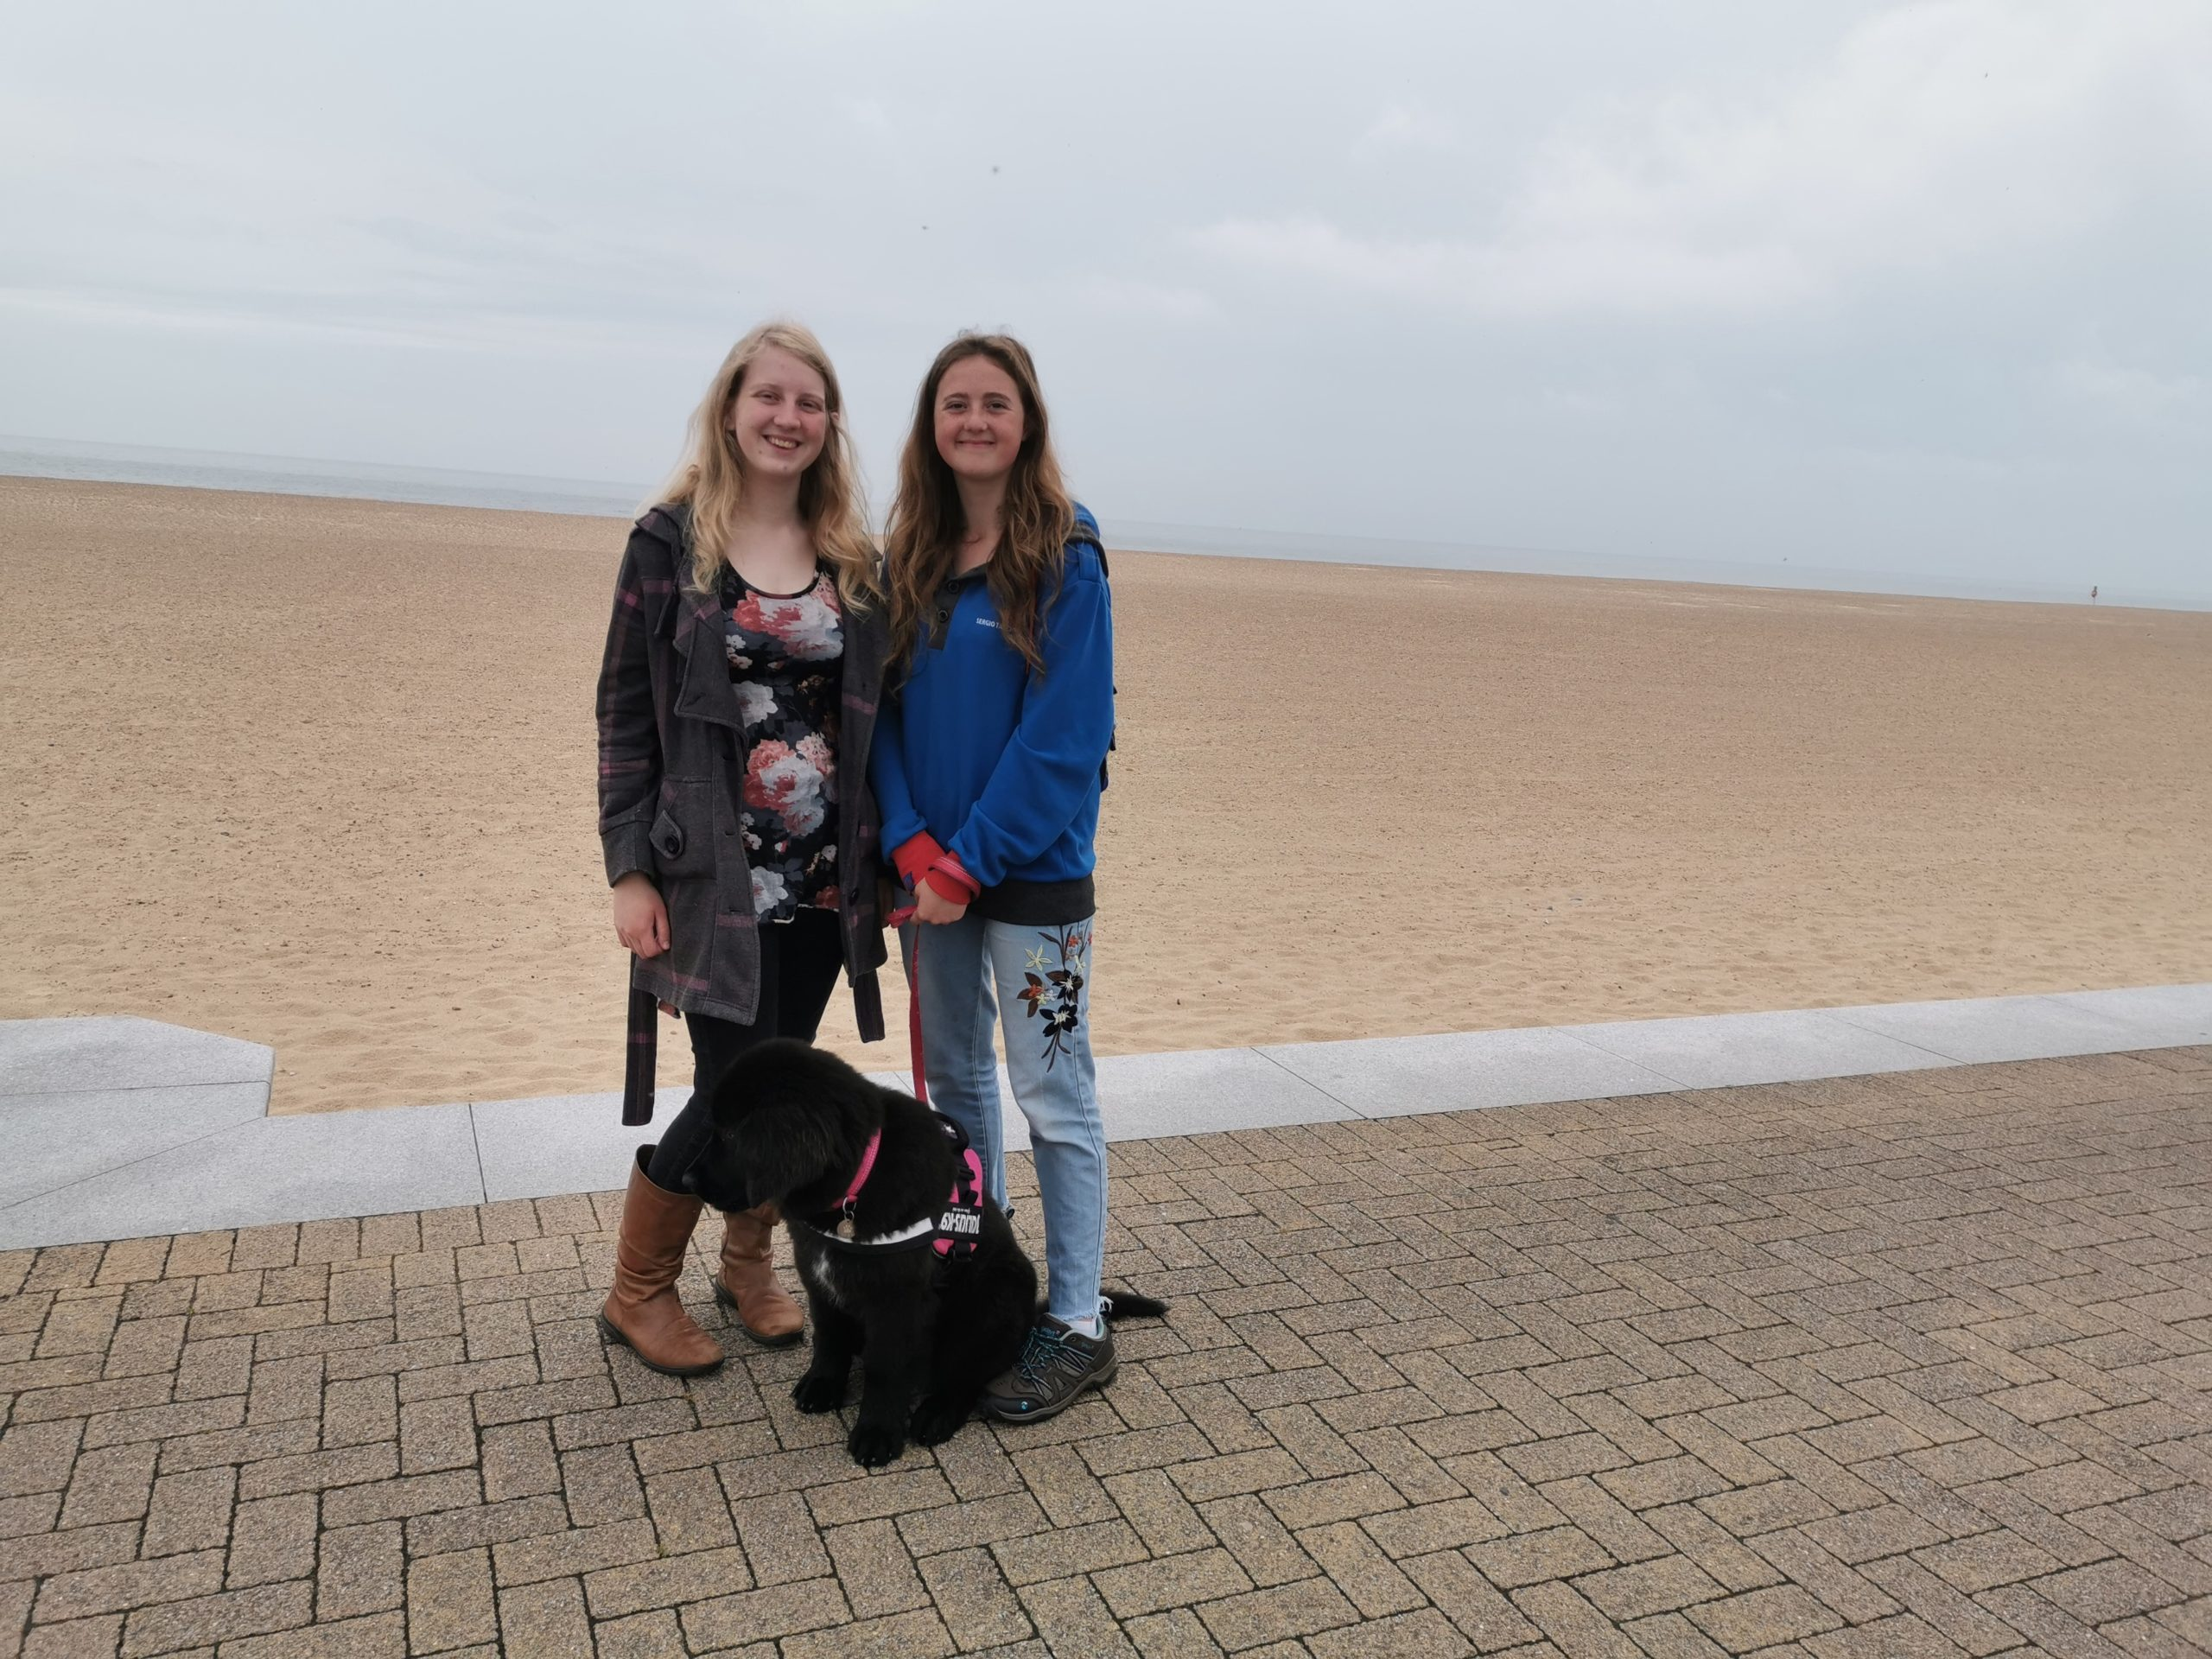 Dog Friendly Great Yarmouth Beaches - Great Yarmouth Beach central